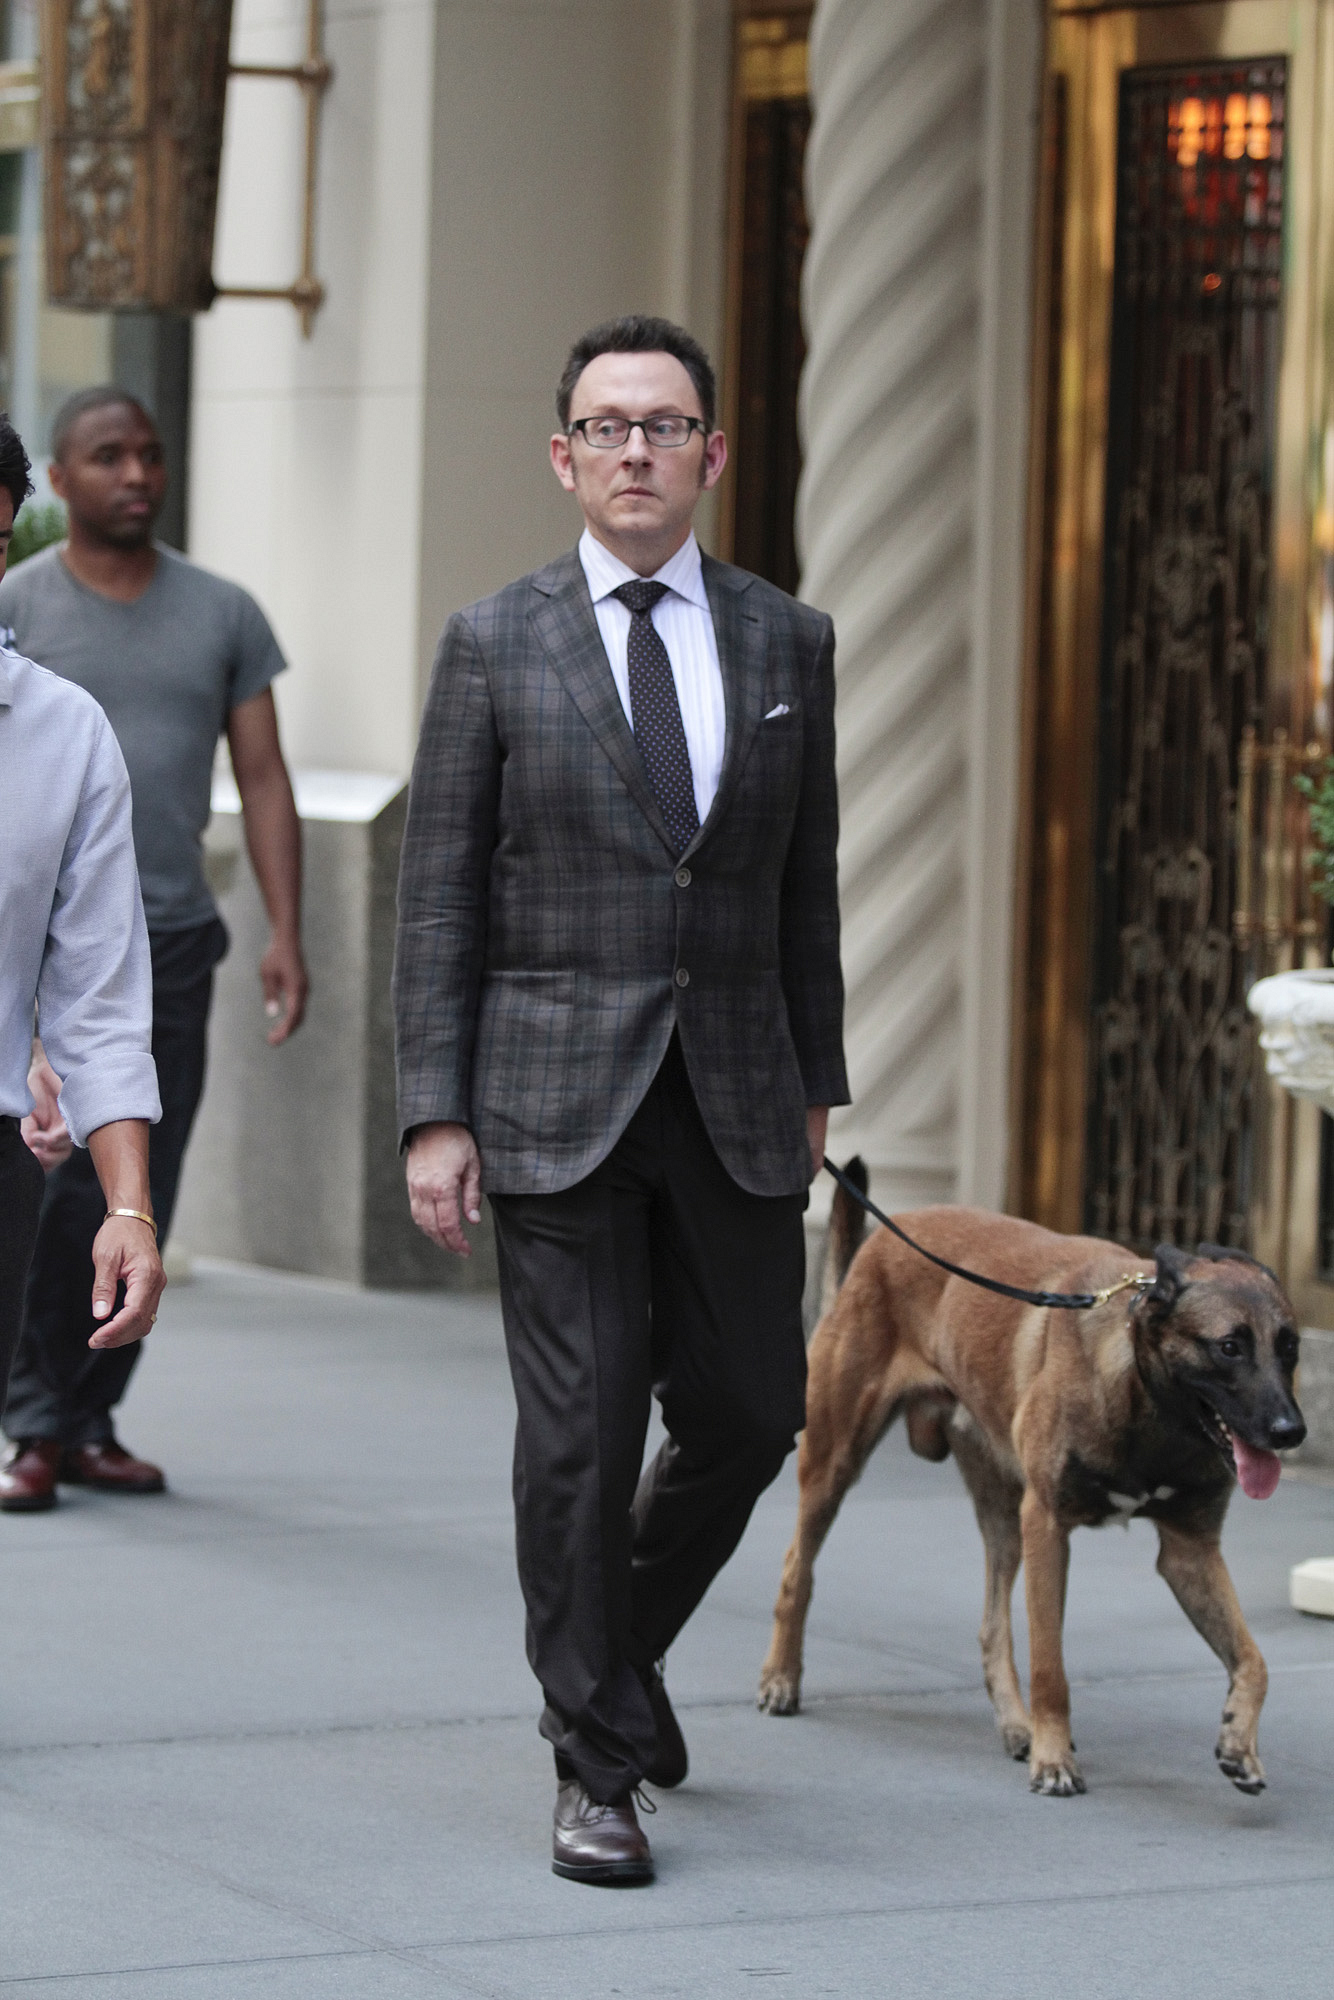 2. Bear (the dog) - Person of Interest